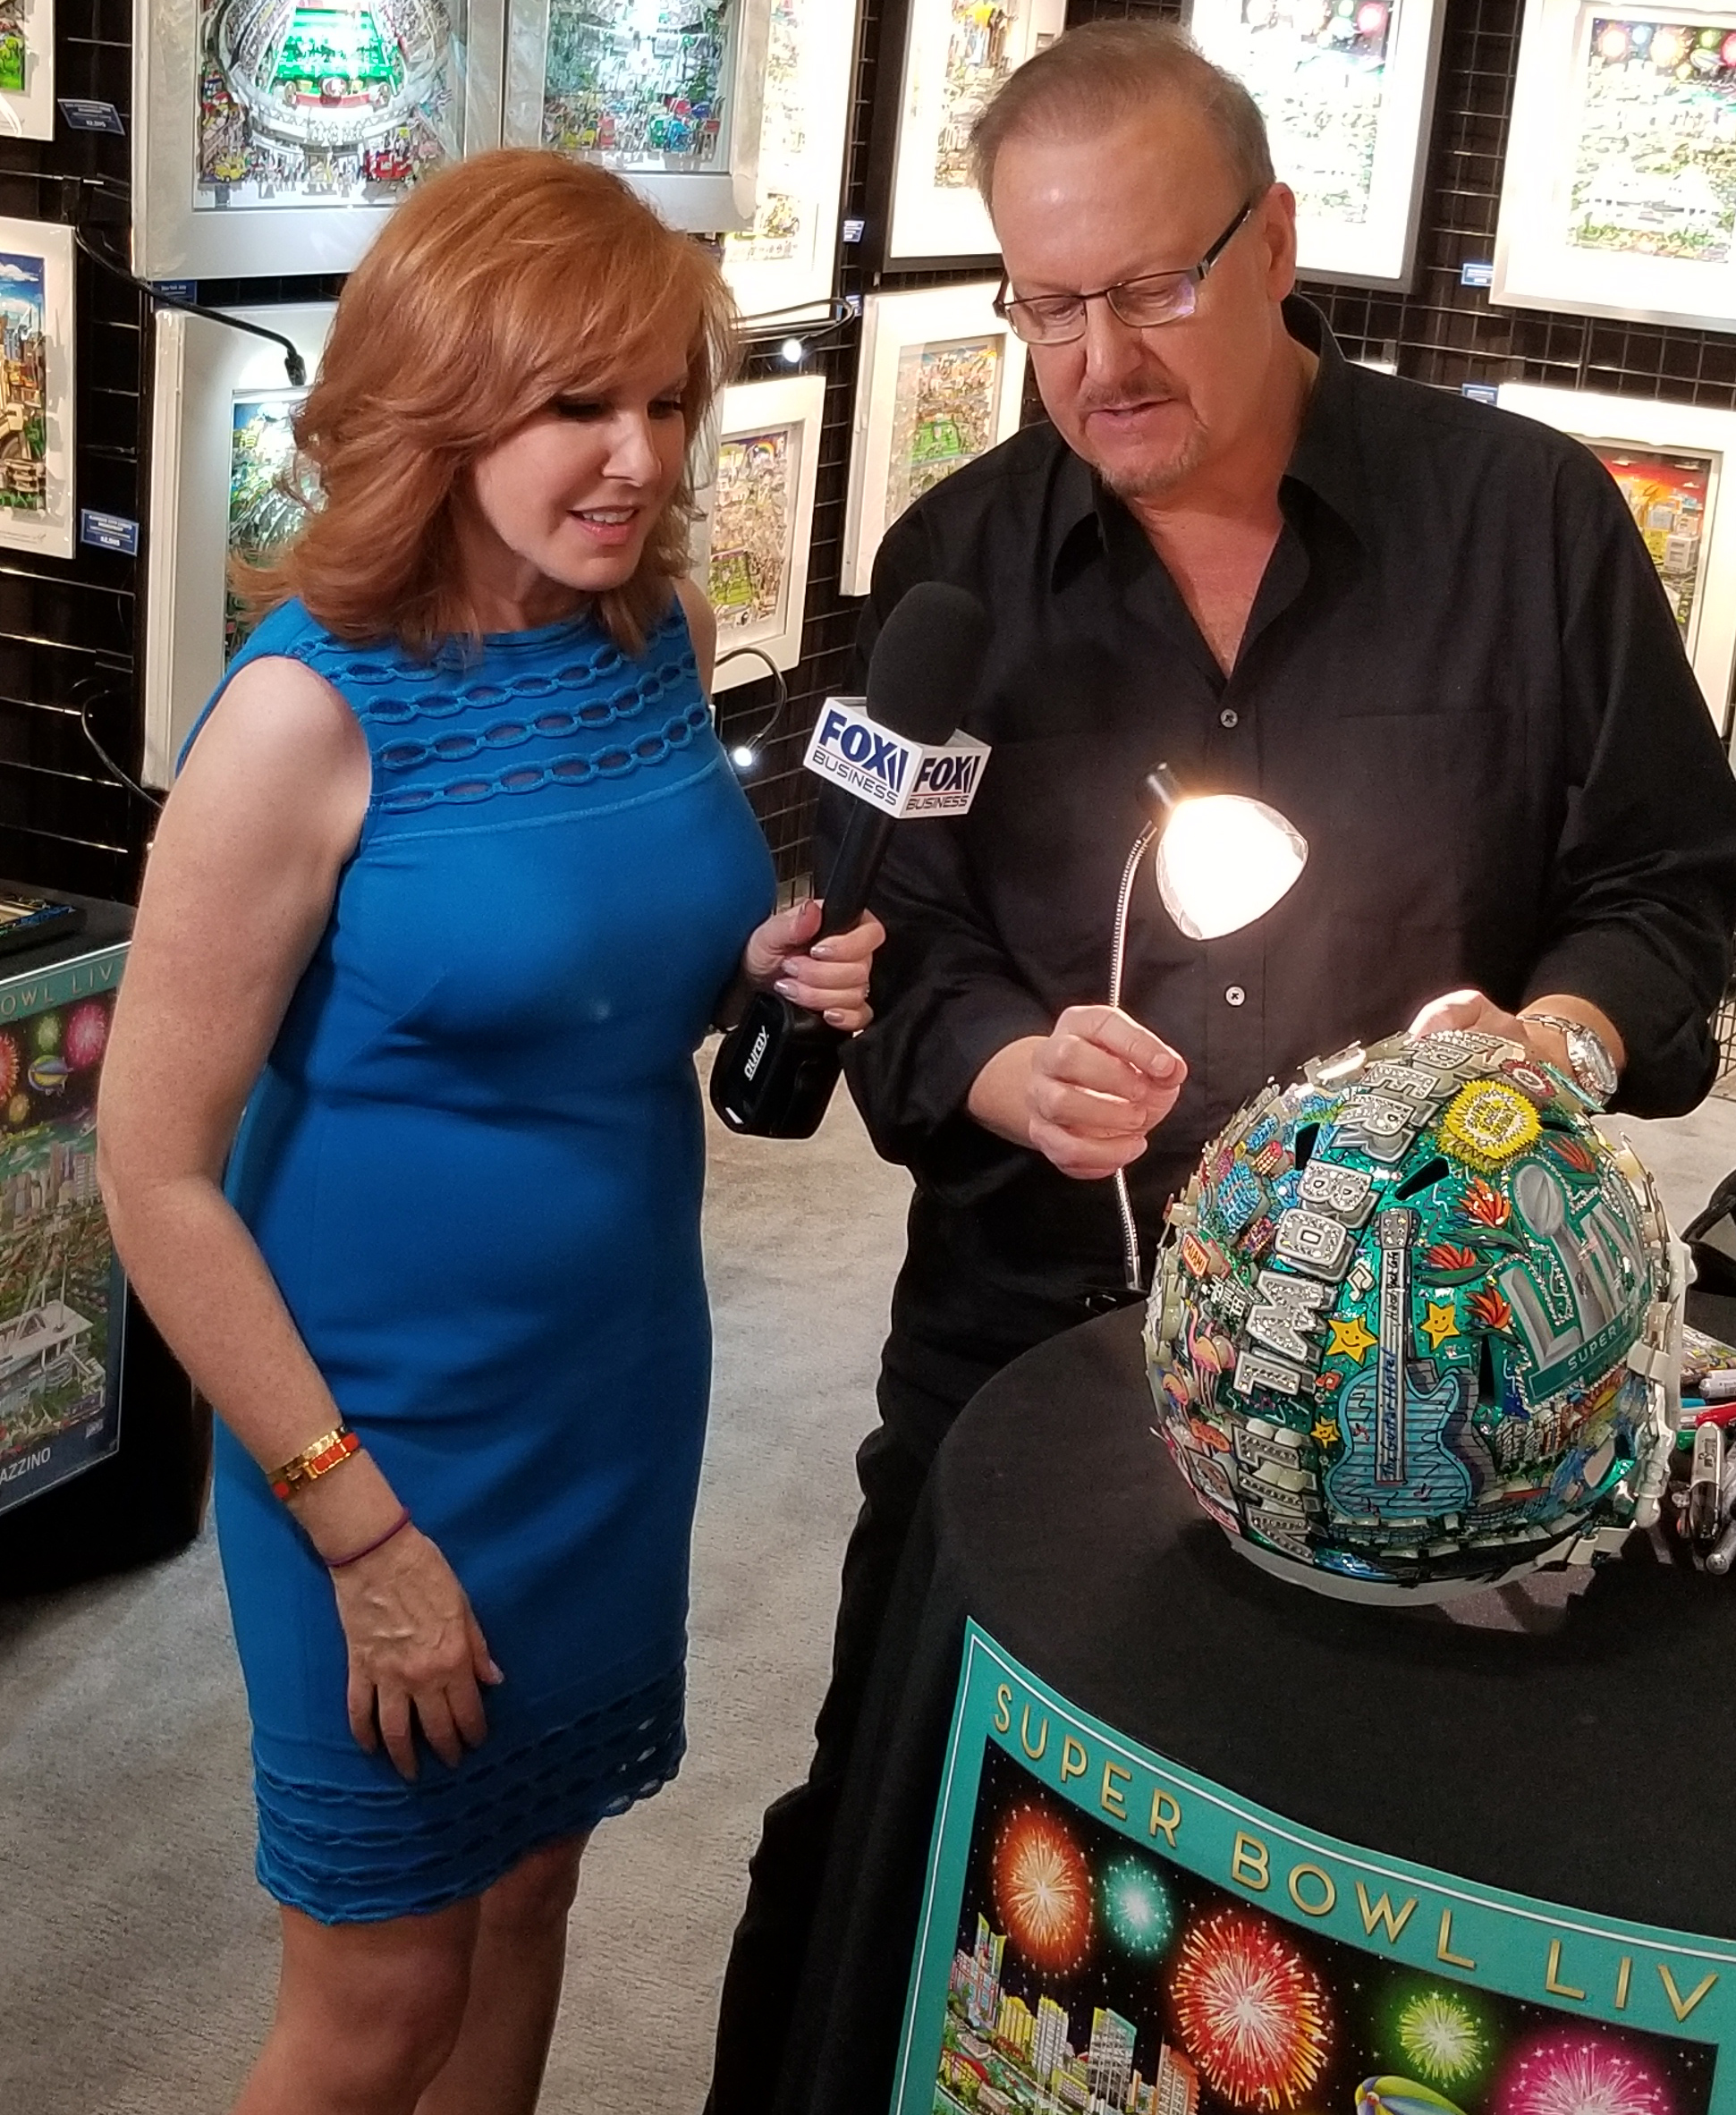 Fox Business Personality Liz Claman came by for a Facebook Live session to discuss Fazzino's Super Bowl art.